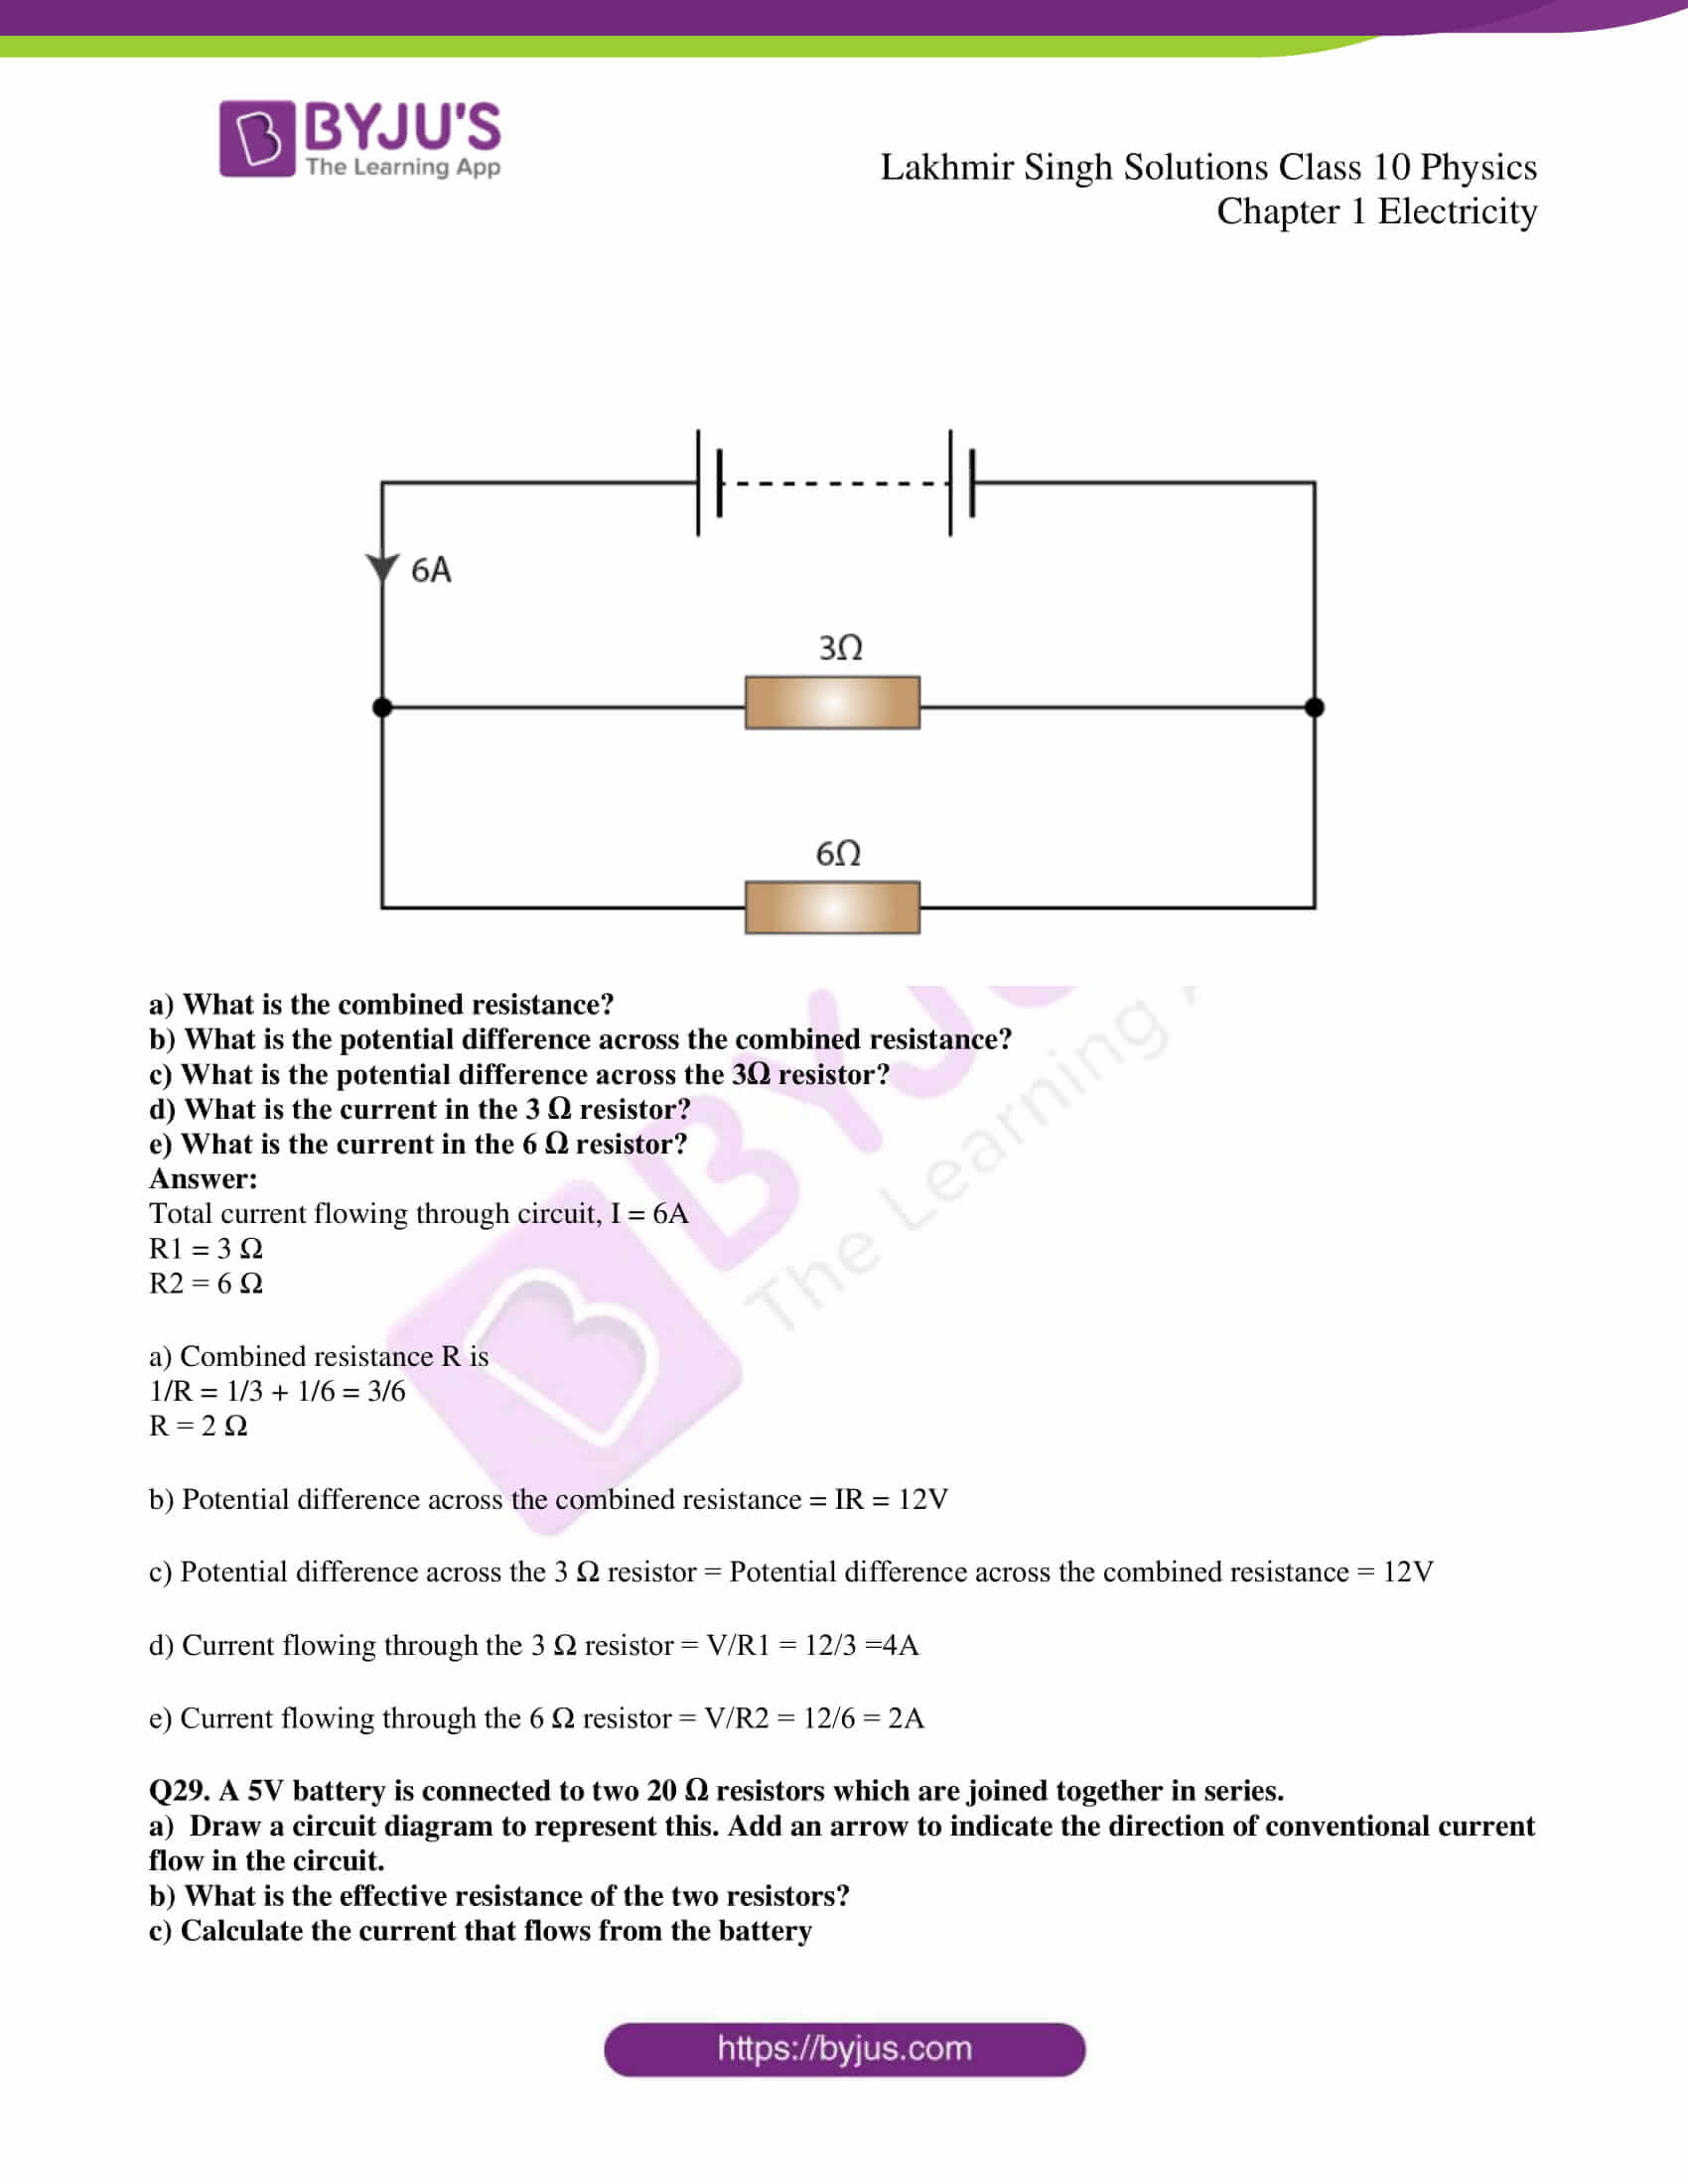 lakhmir singh solutions class 10 physics chapter 1 52